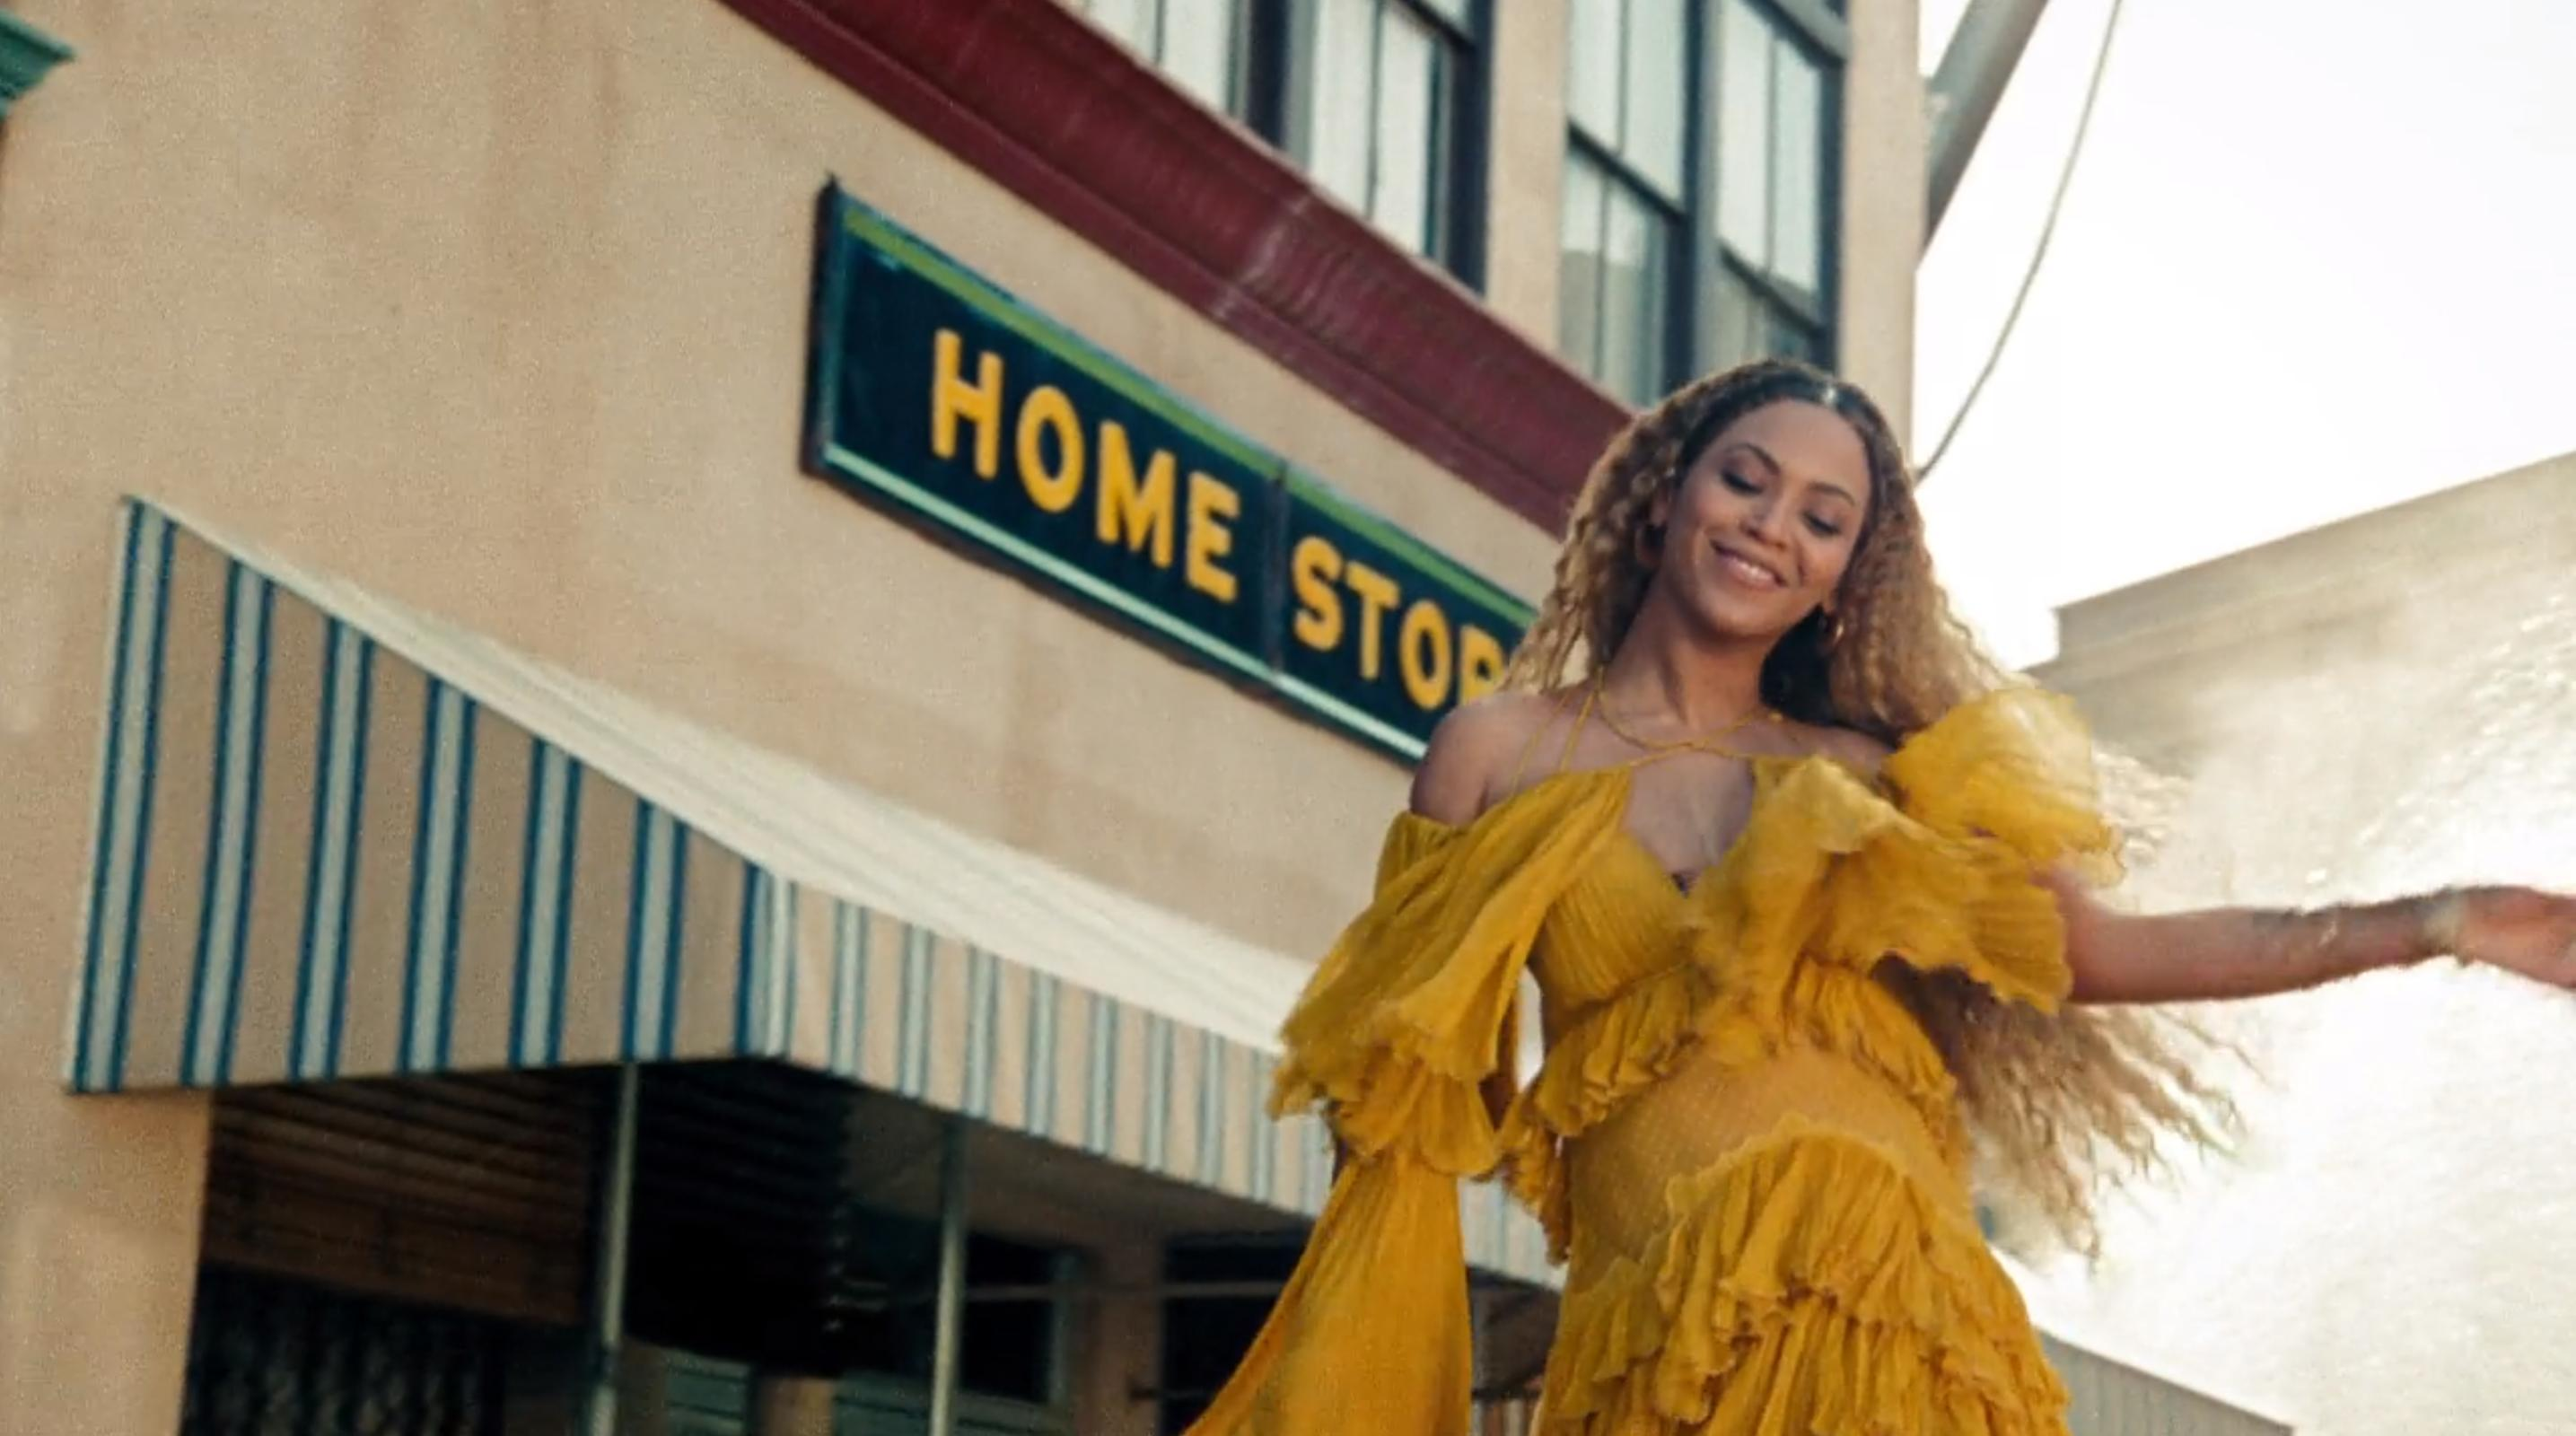 Where To Download Beyonce S New Album Lemonade Without Signing Up For Tidal Bgr